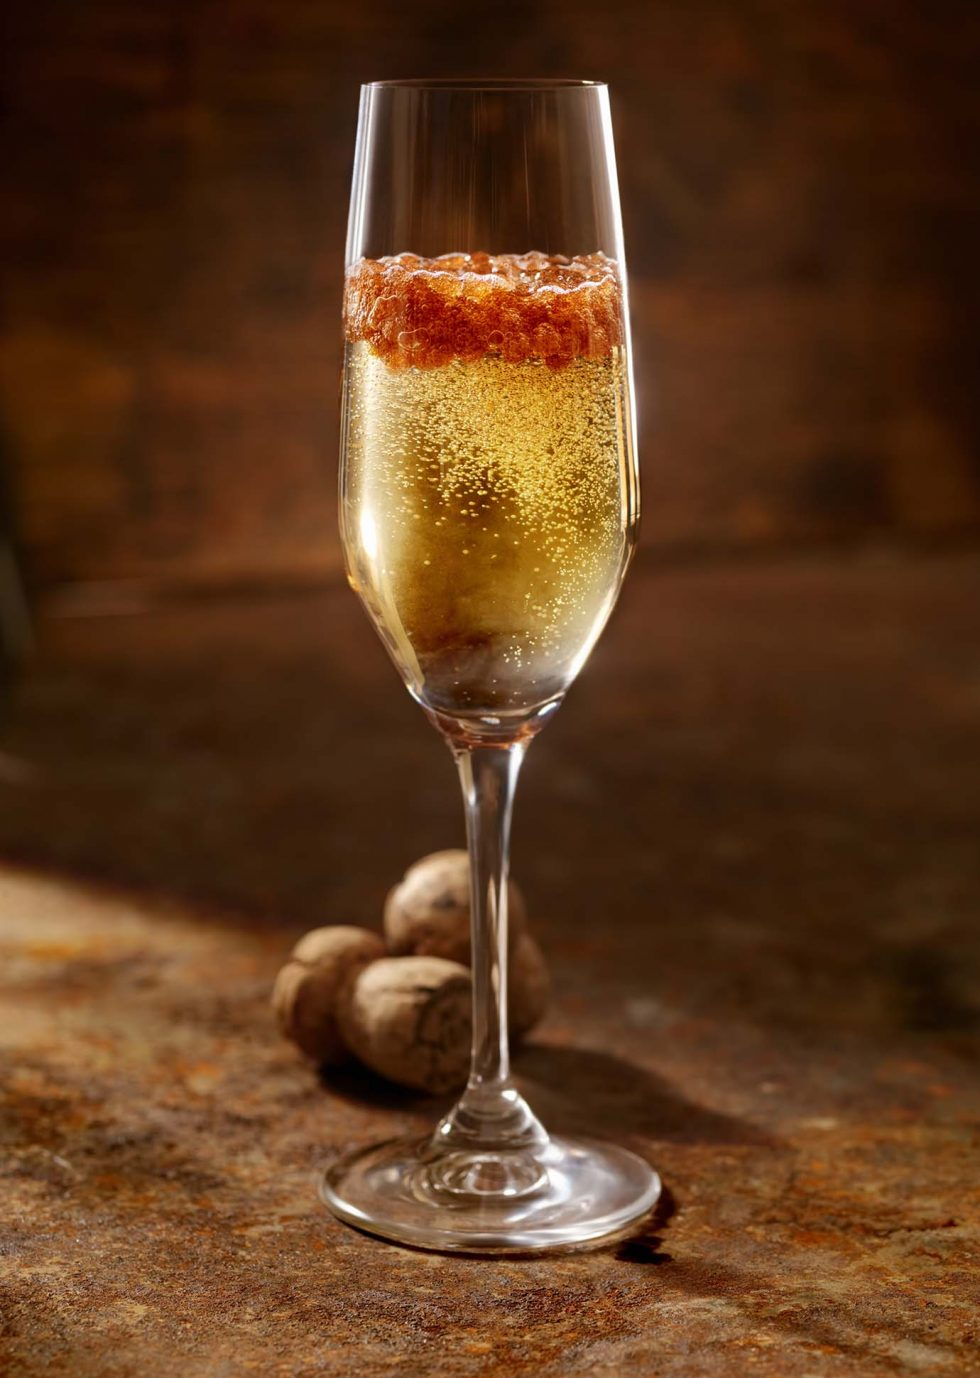 Calgary Beverage Photographer. A Glass of bubbly full of berries on rustic backdrop.